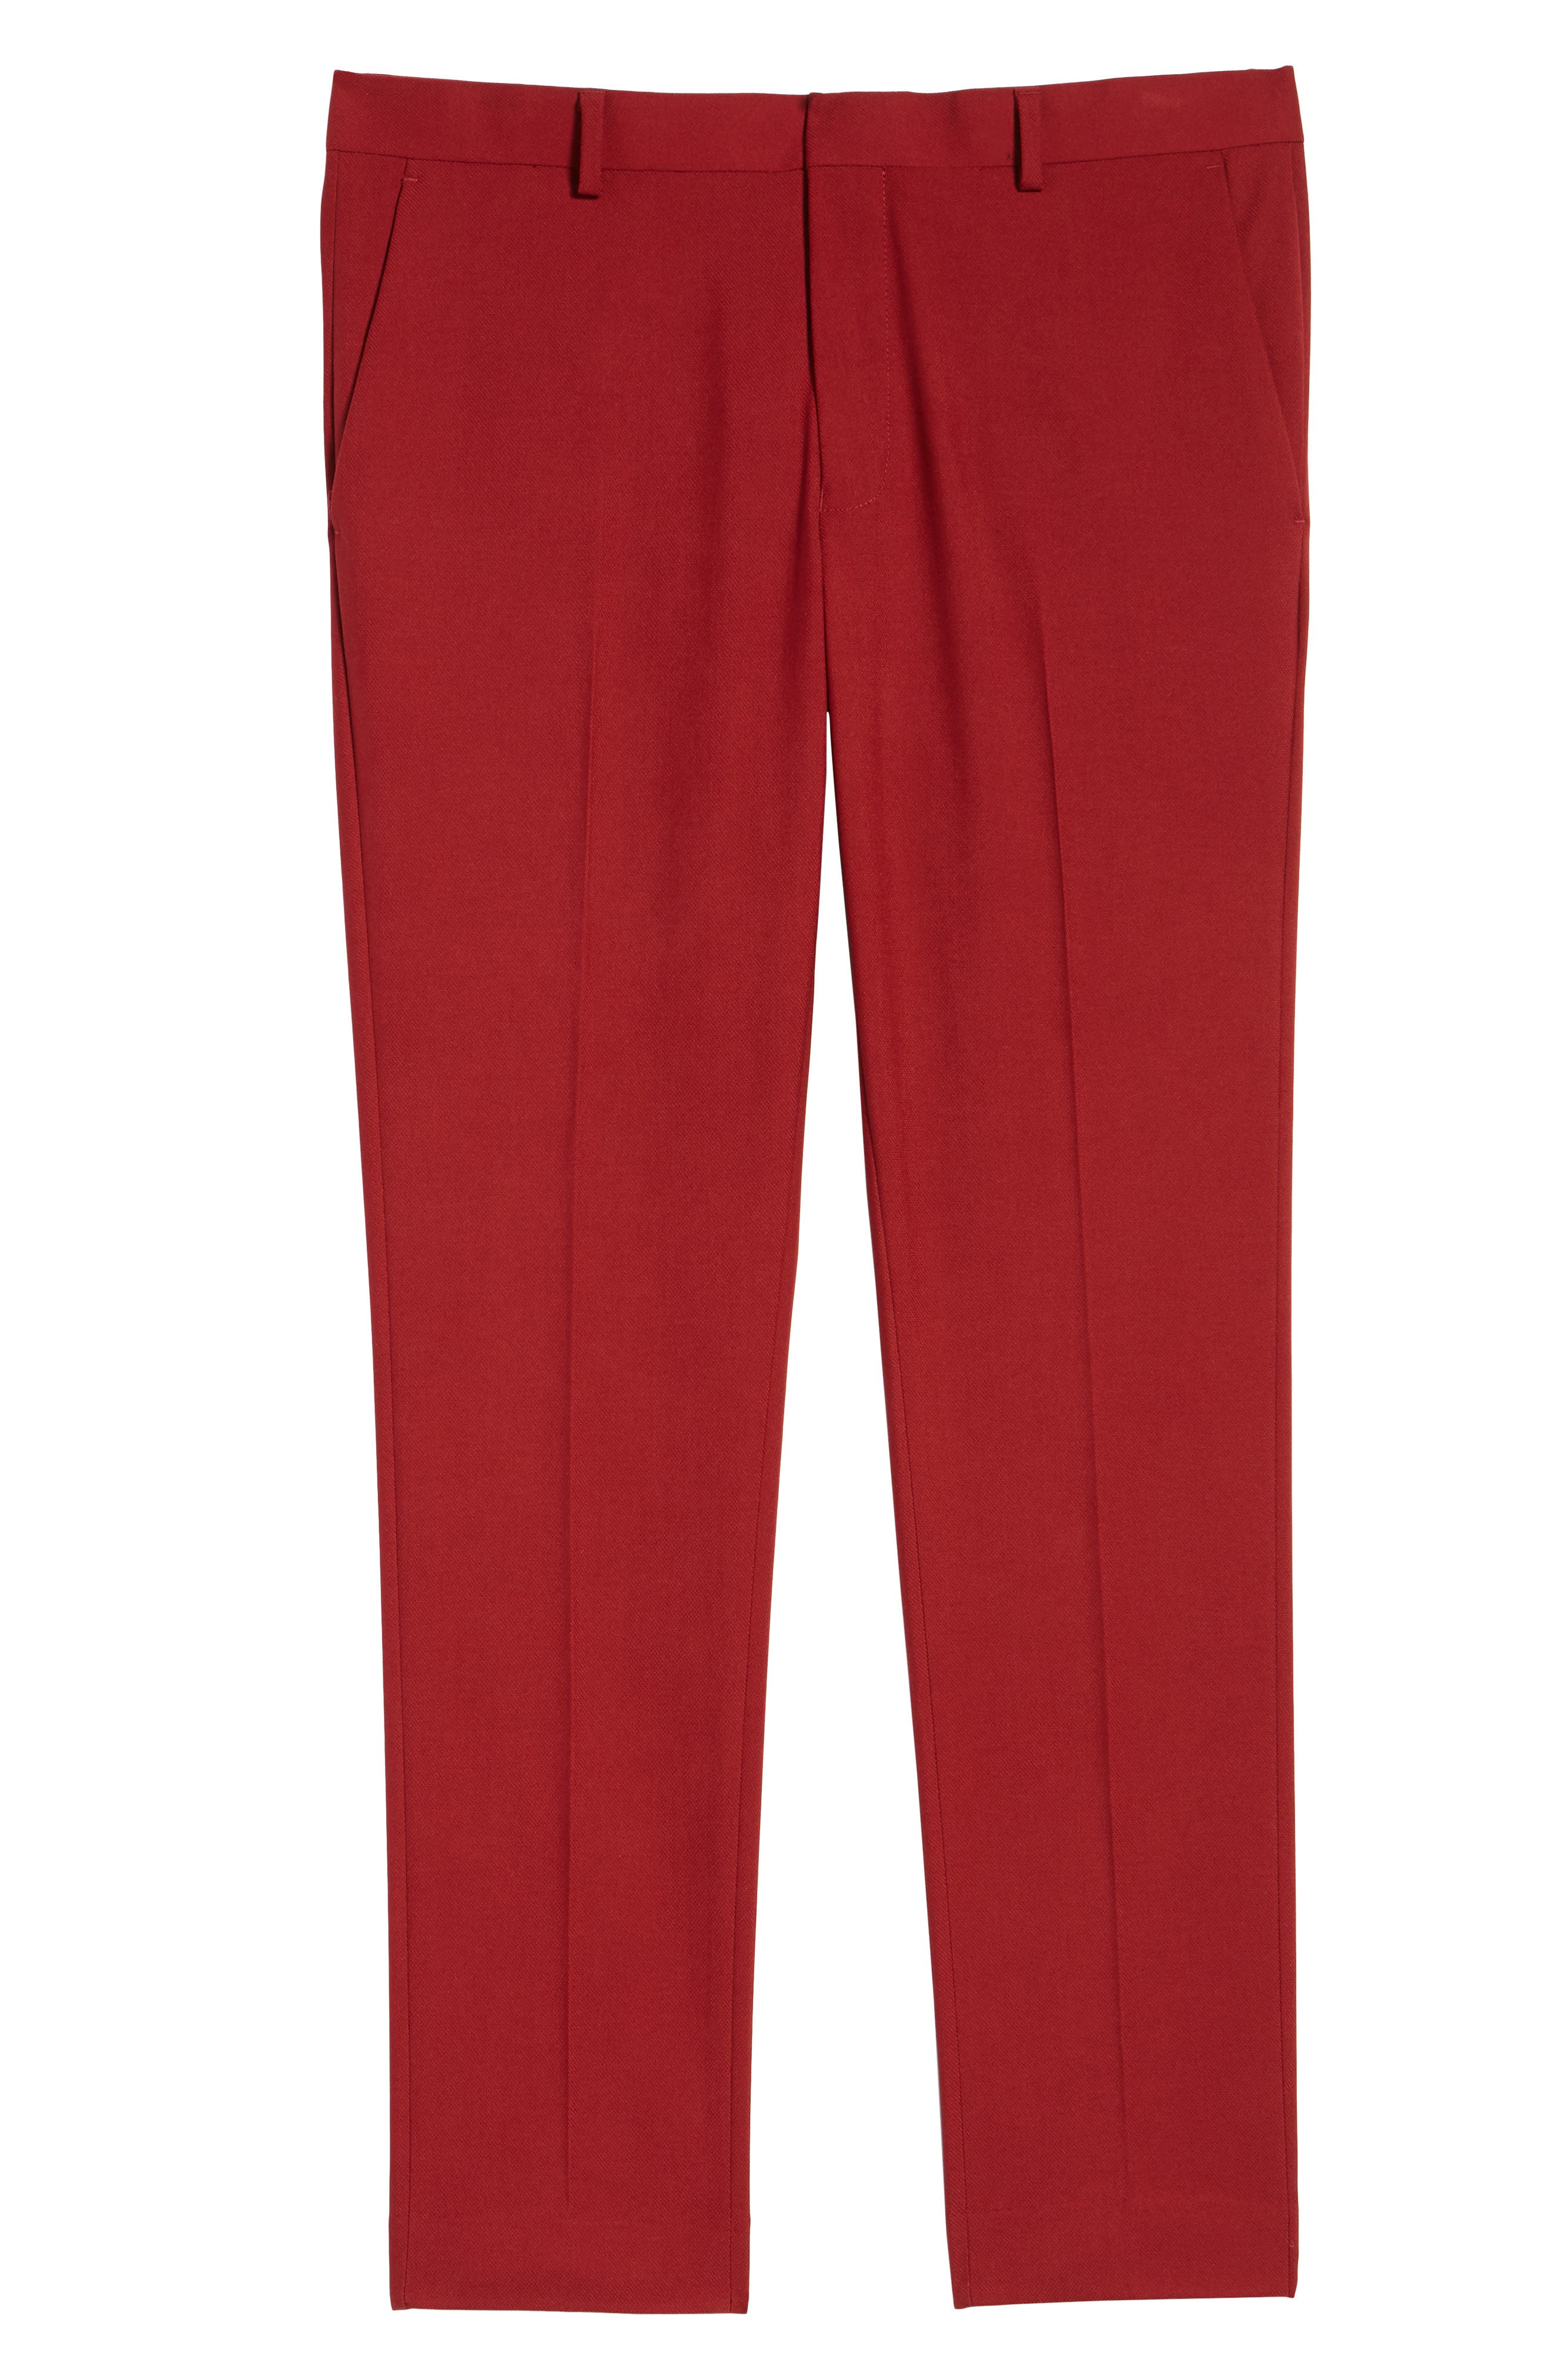 Skinny Fit Suit Trousers,                             Alternate thumbnail 6, color,                             600